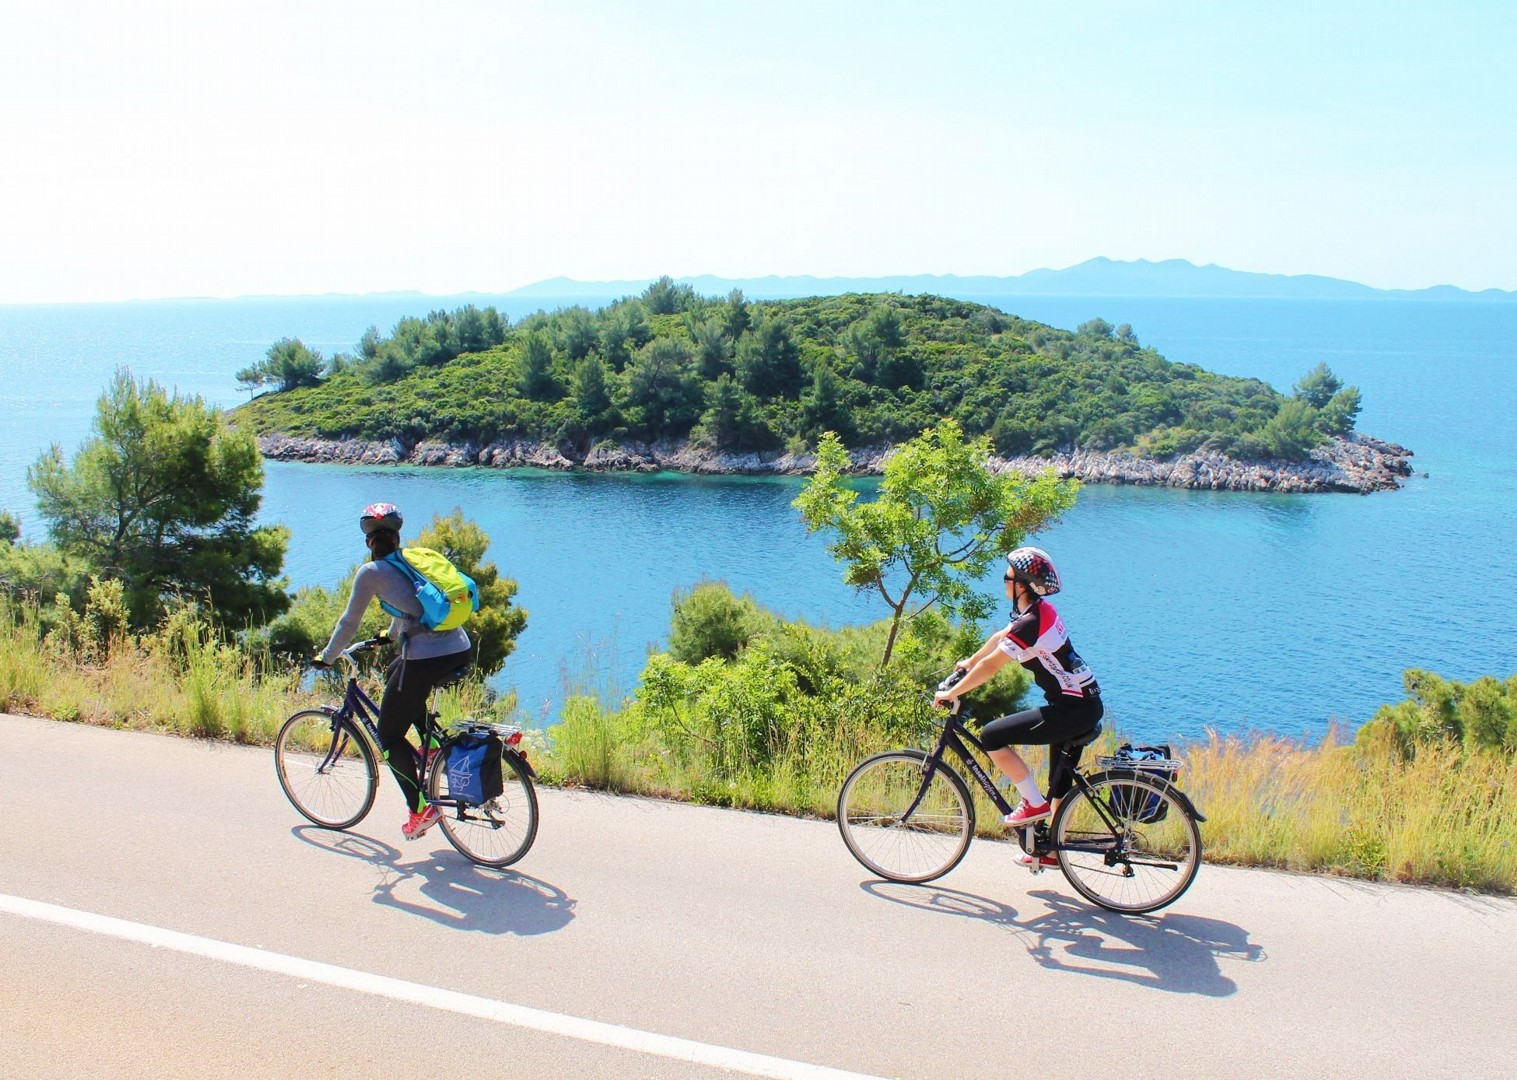 leisure-cycling-holiday-island-stunning-views-fun-filled.jpg - Croatia - Southern Dalmatia Plus - Bike and Boat Holiday - Leisure Cycling